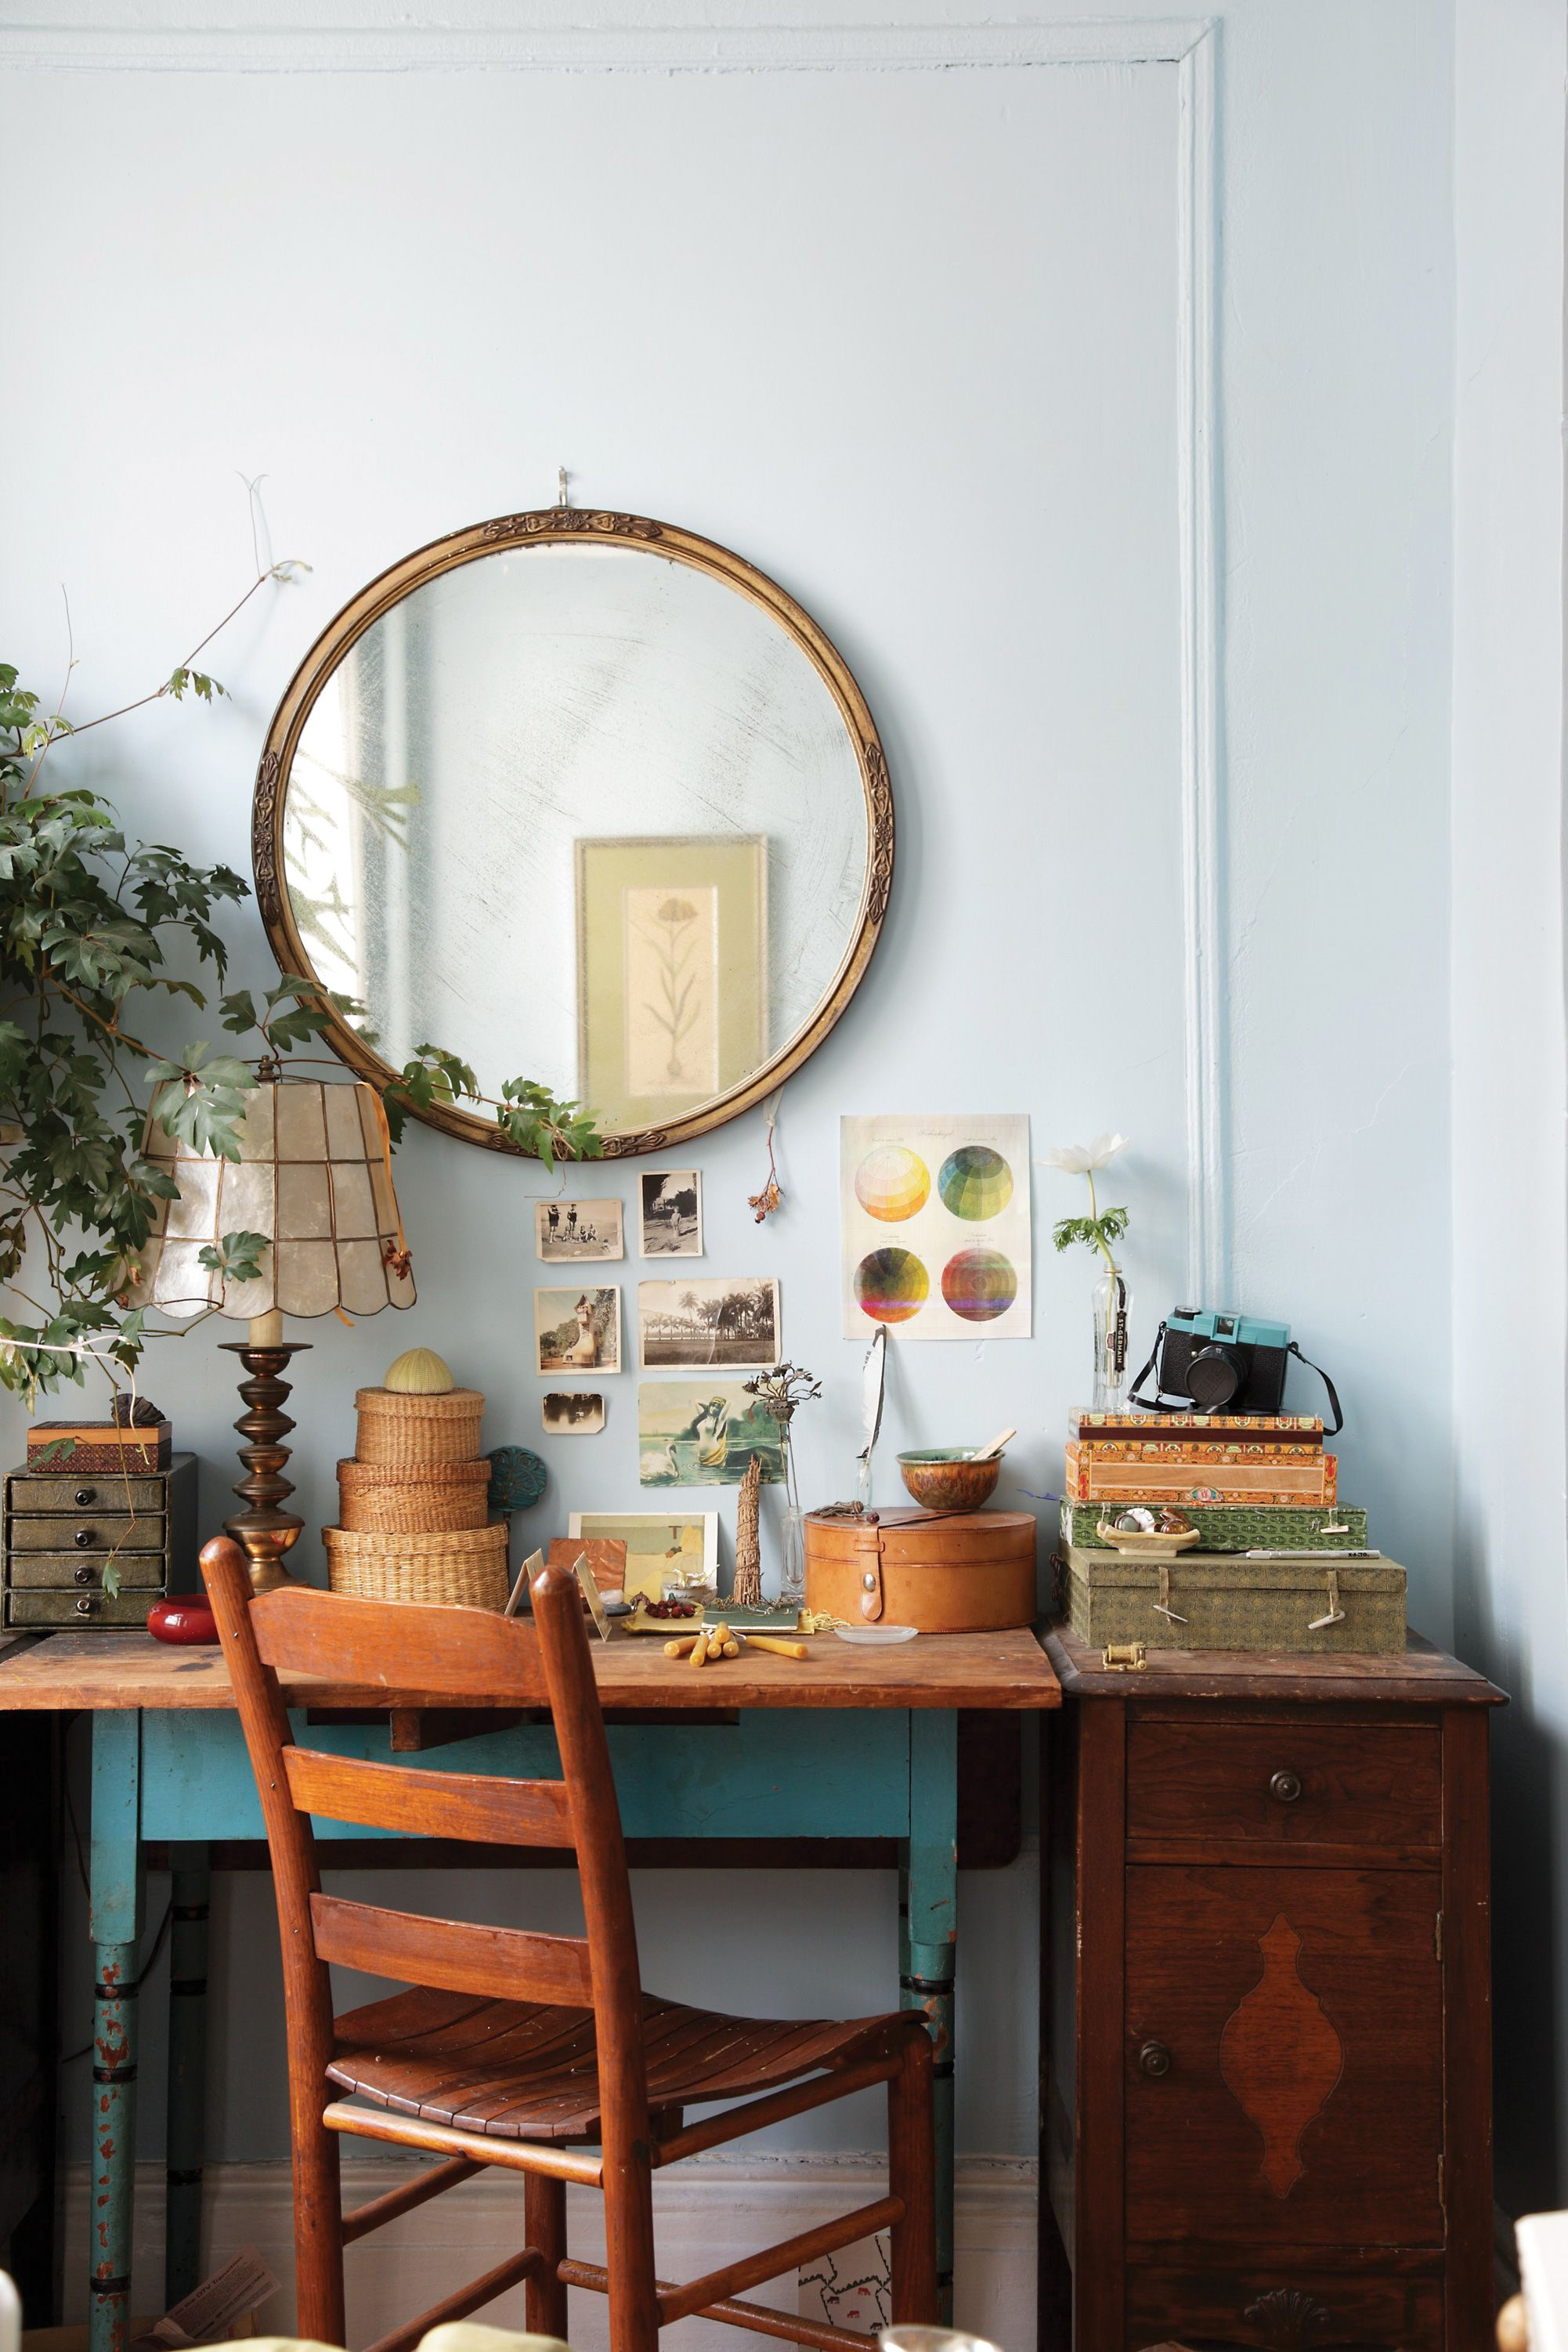 15 Best Images About Turquoise Room Decorations